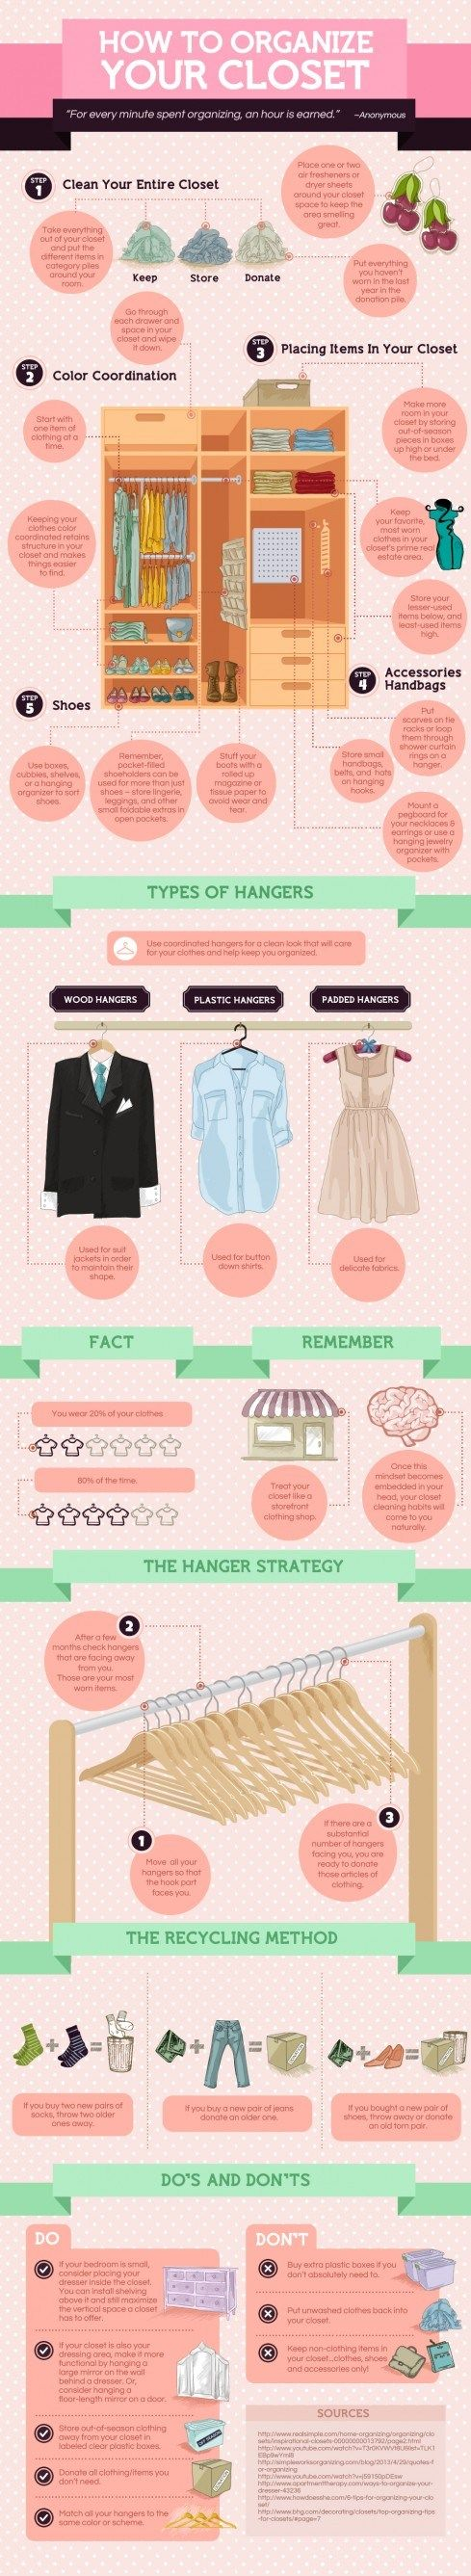 [Infographic] How to Organize Your Closet ?